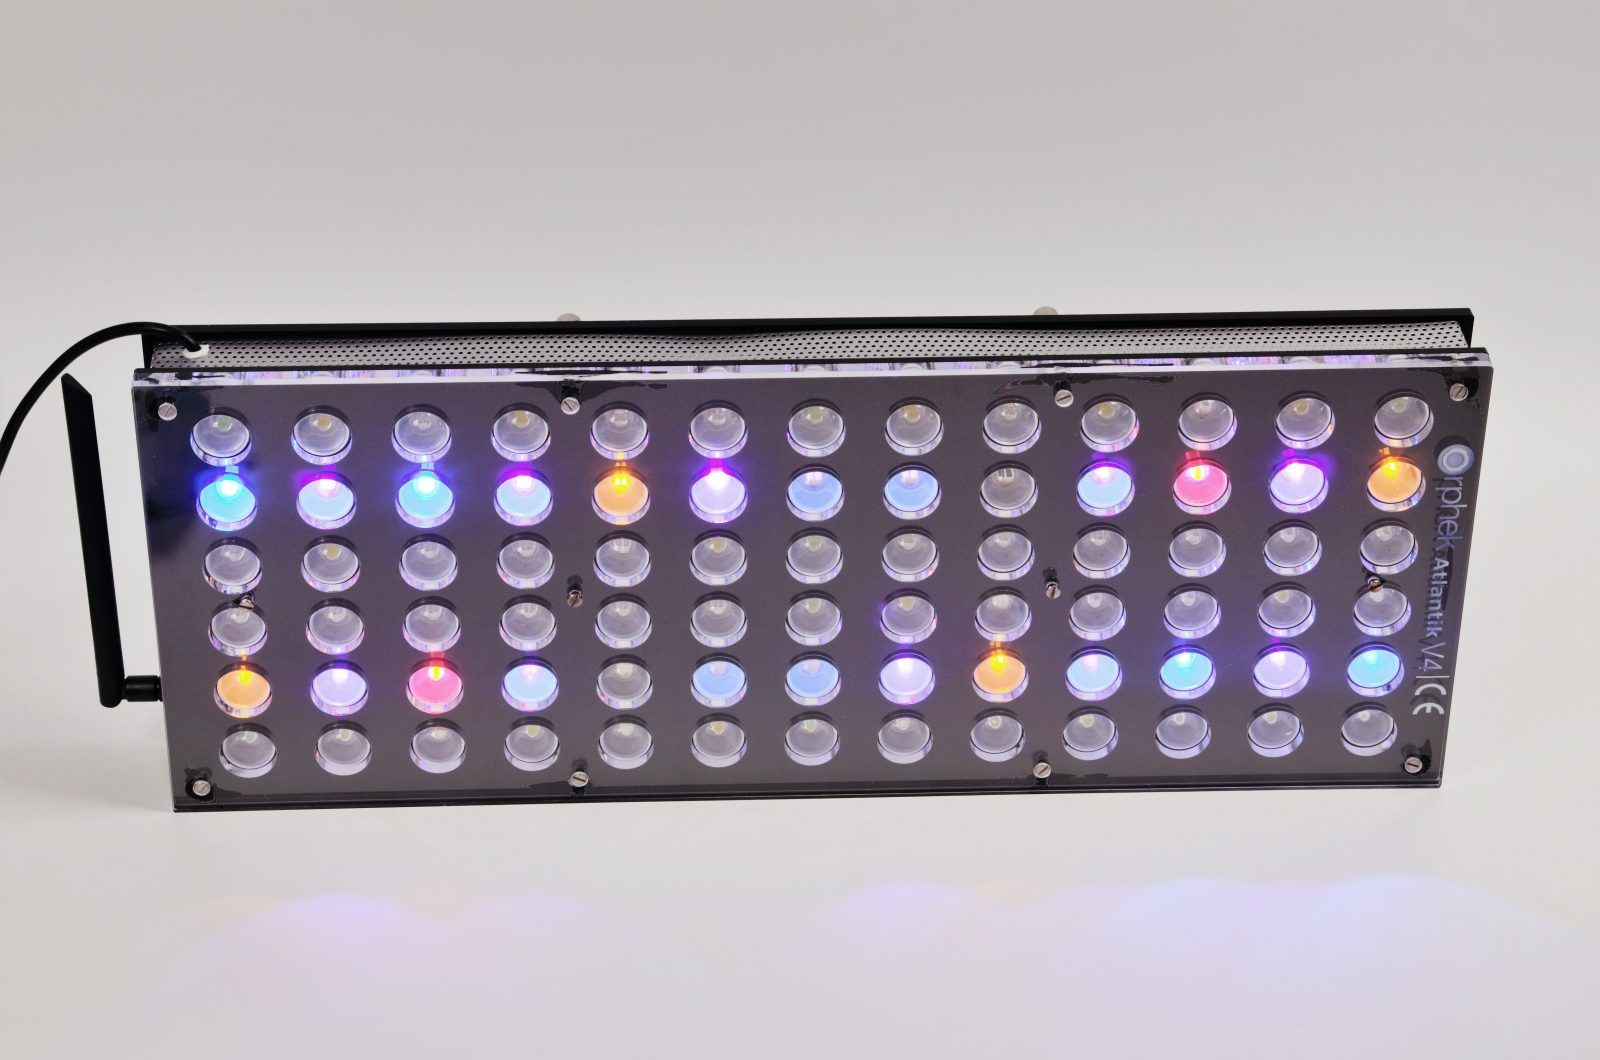 Orphek-Aquarium-LED-Lighting-Reef-Atlantik-V4-light-on-channel 3 + 4